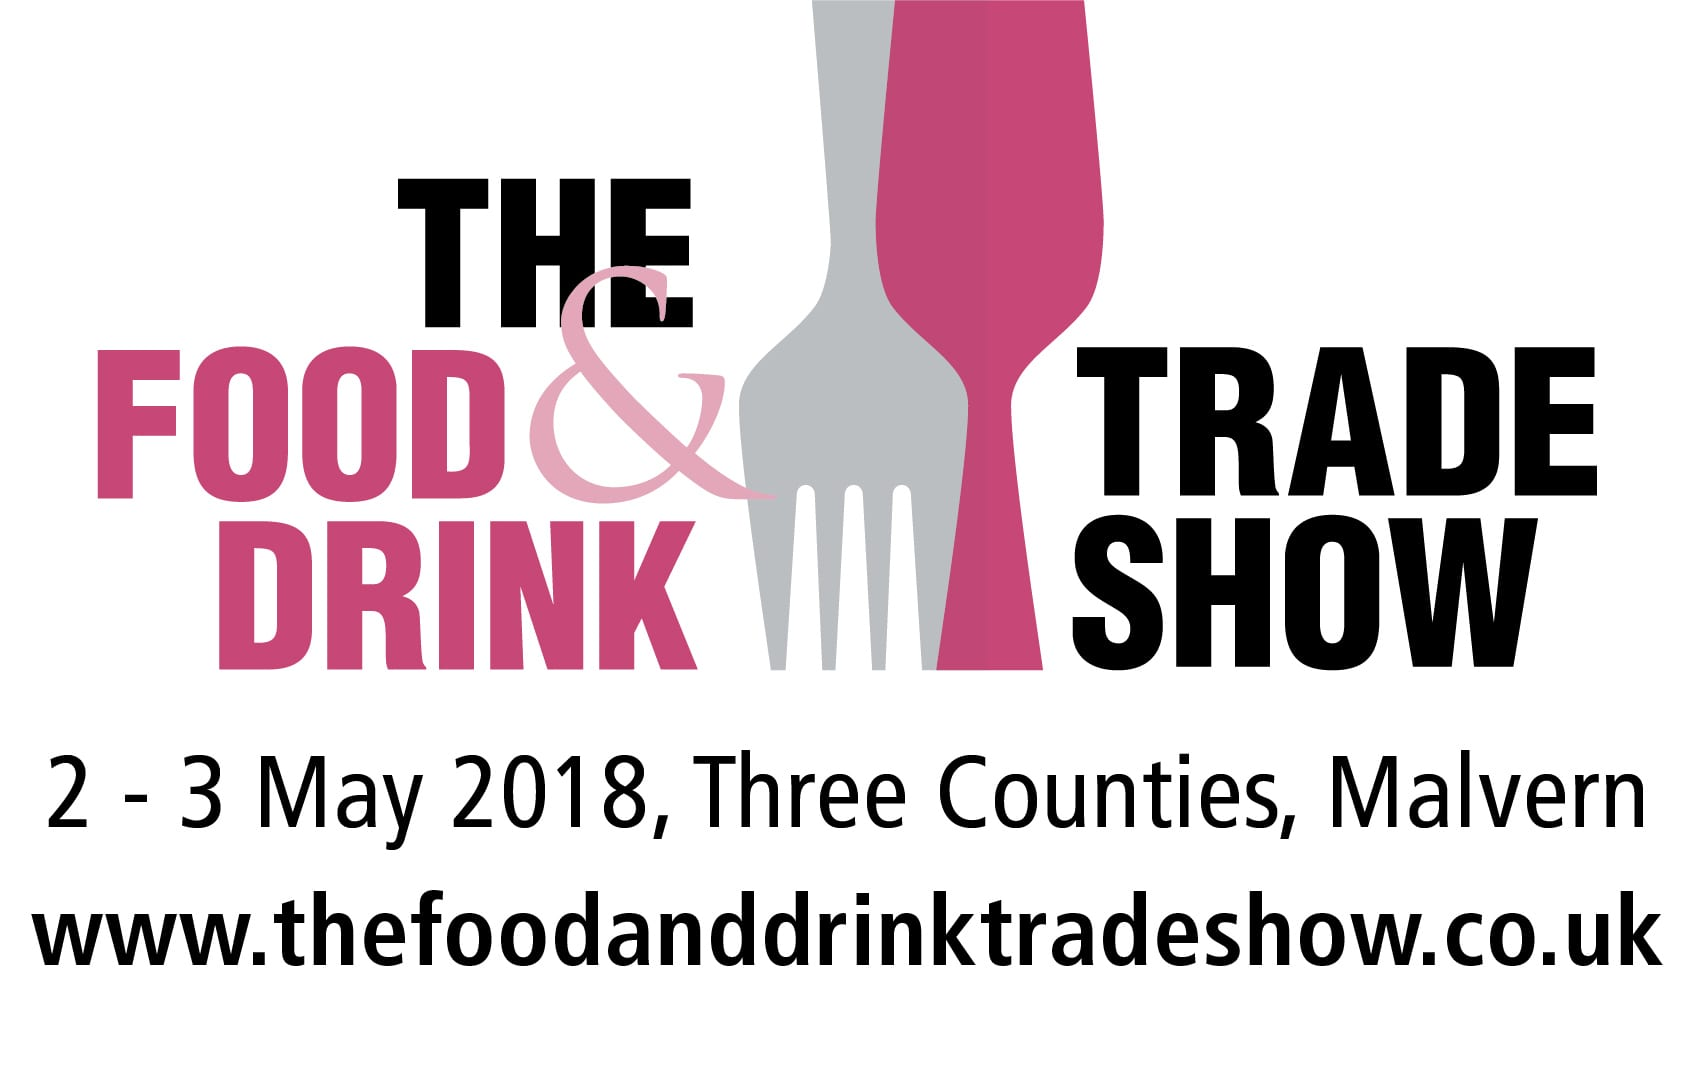 Food & Drink Trade Show logo